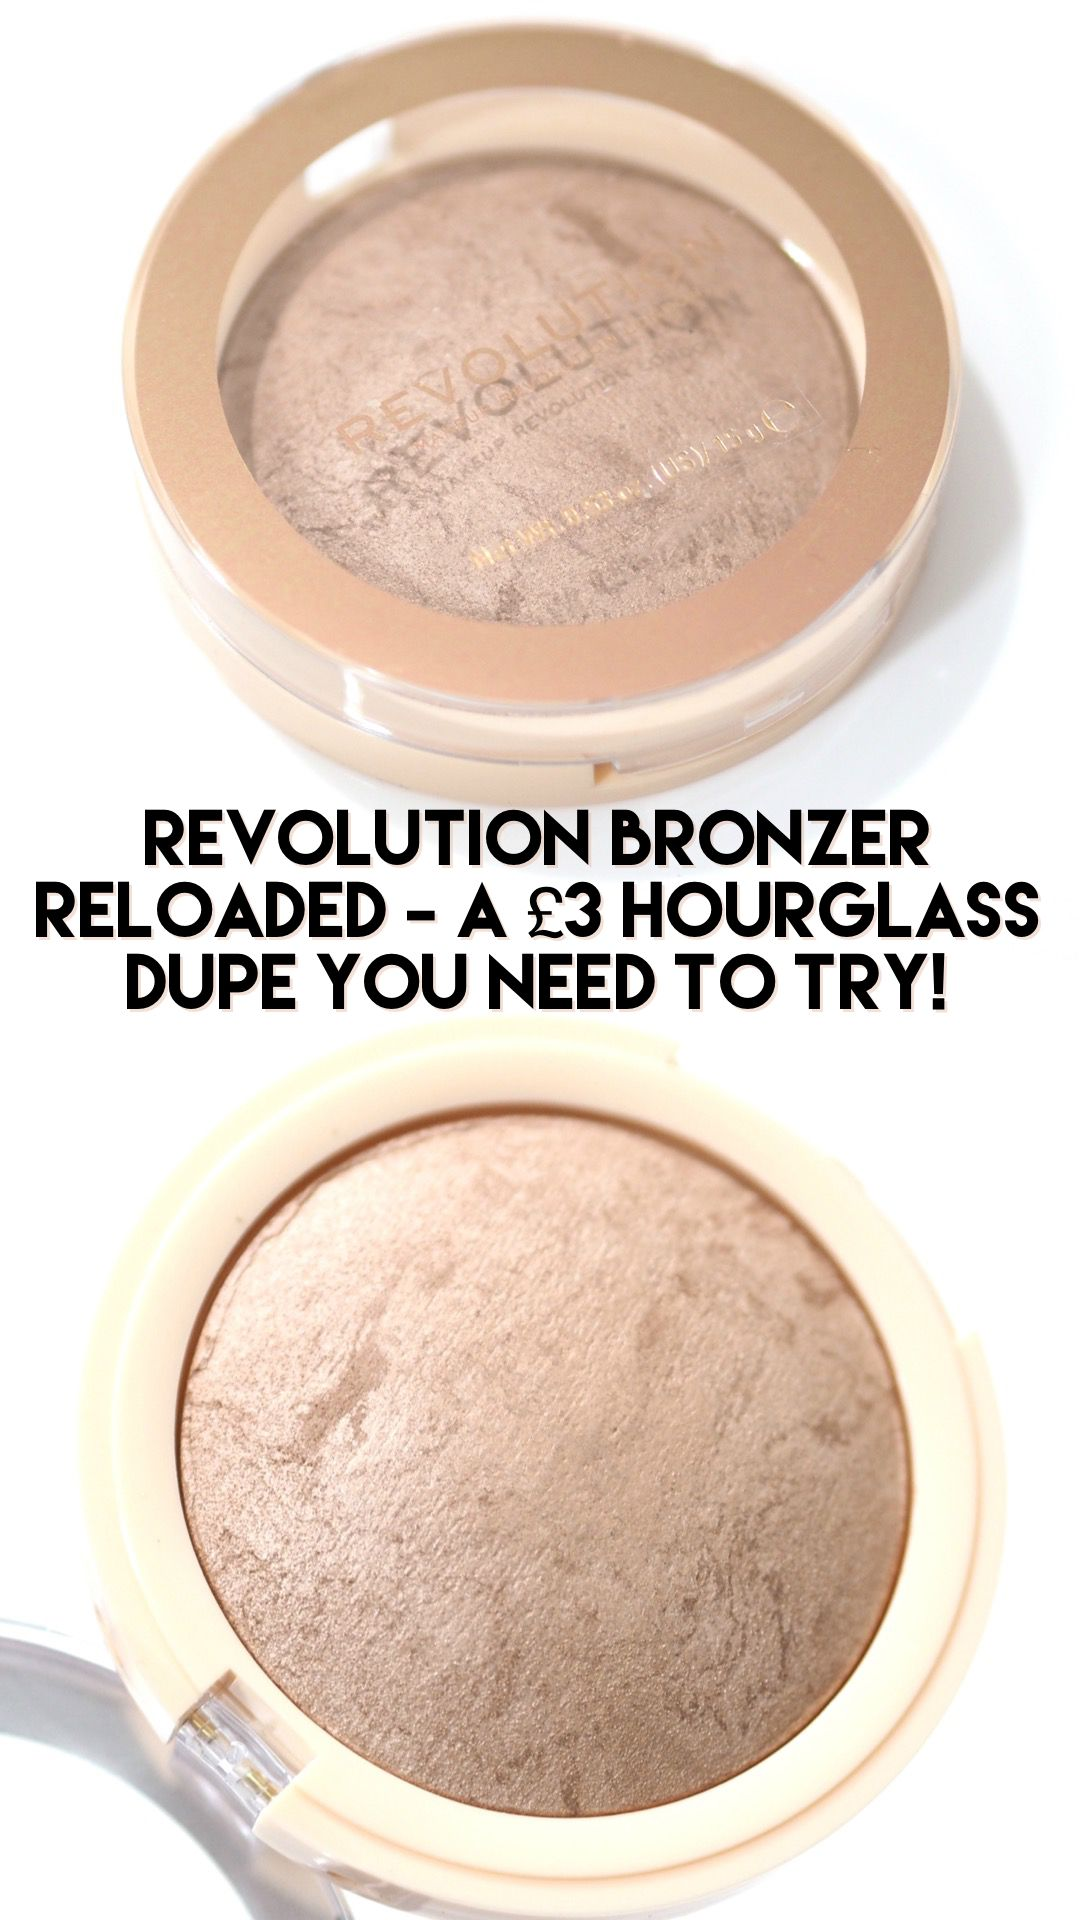 Revolution Bronzer Reloaded Hourglass Dupe?! Review